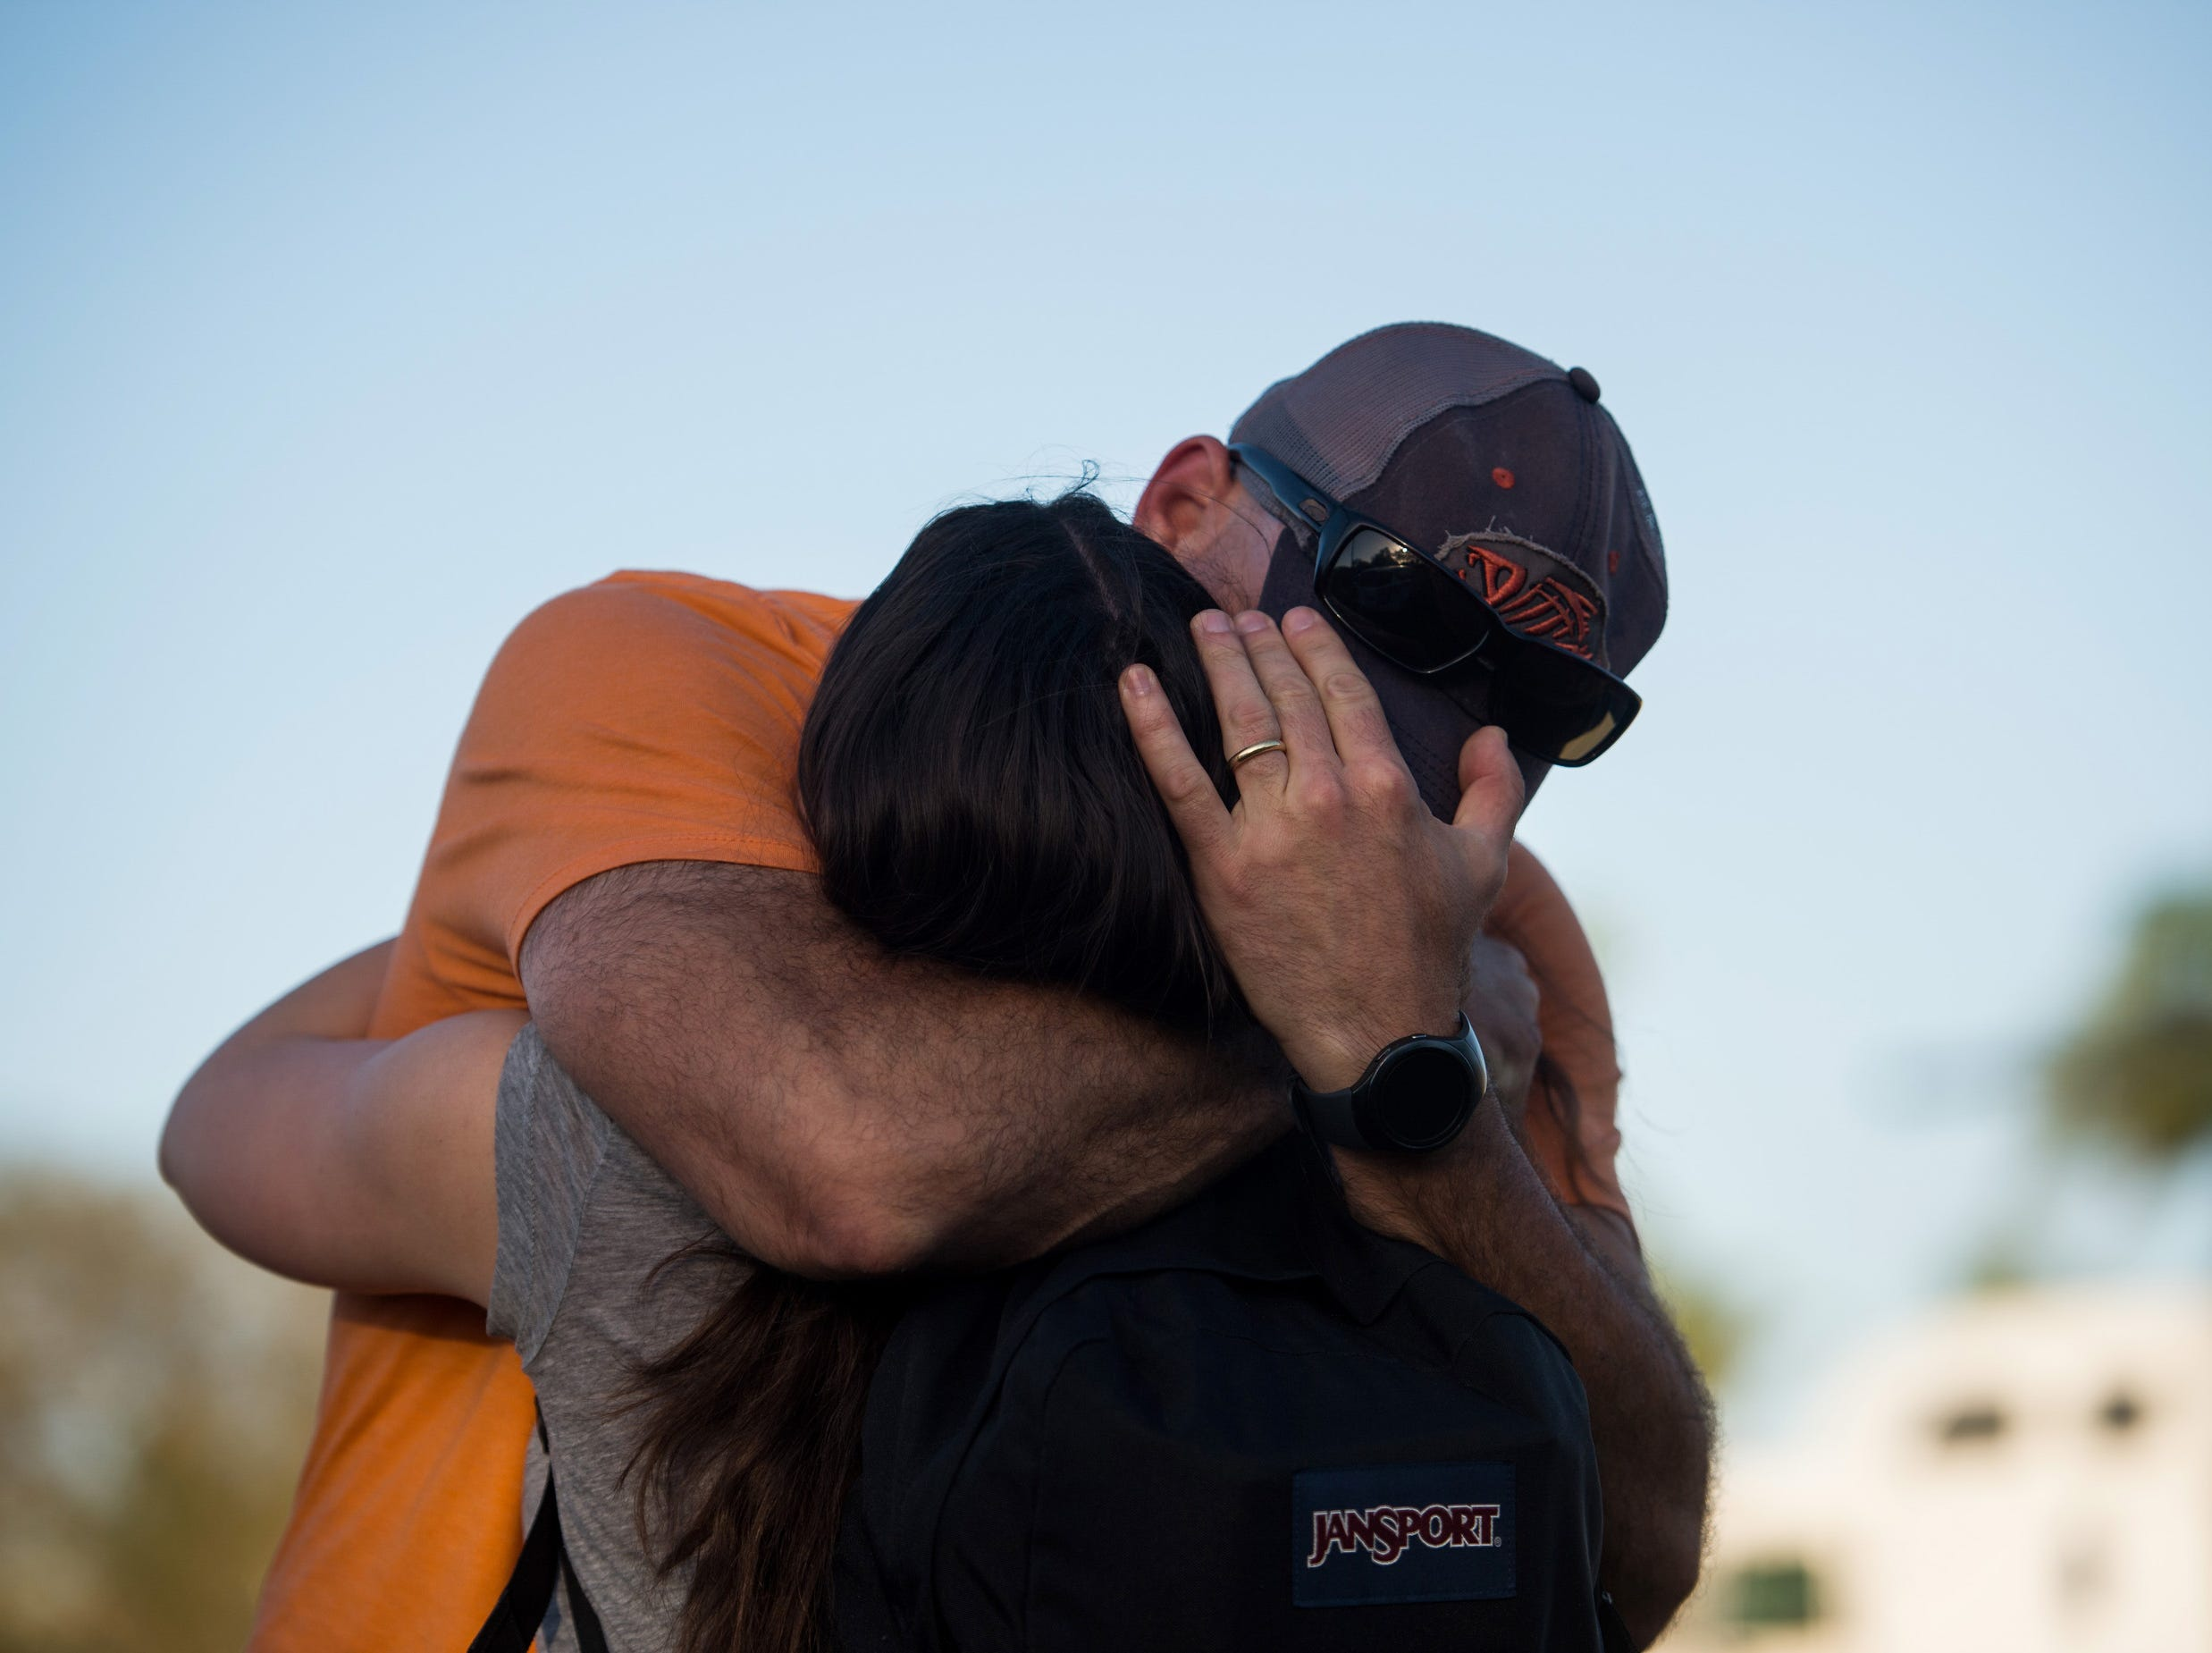 A father embraces his daughter Wednesday, Feb. 14, 2018, at University Drive and Holmberg Road, where students reunited with family members after a mass shooting at Marjory Stoneman Douglas High School in Parkland.